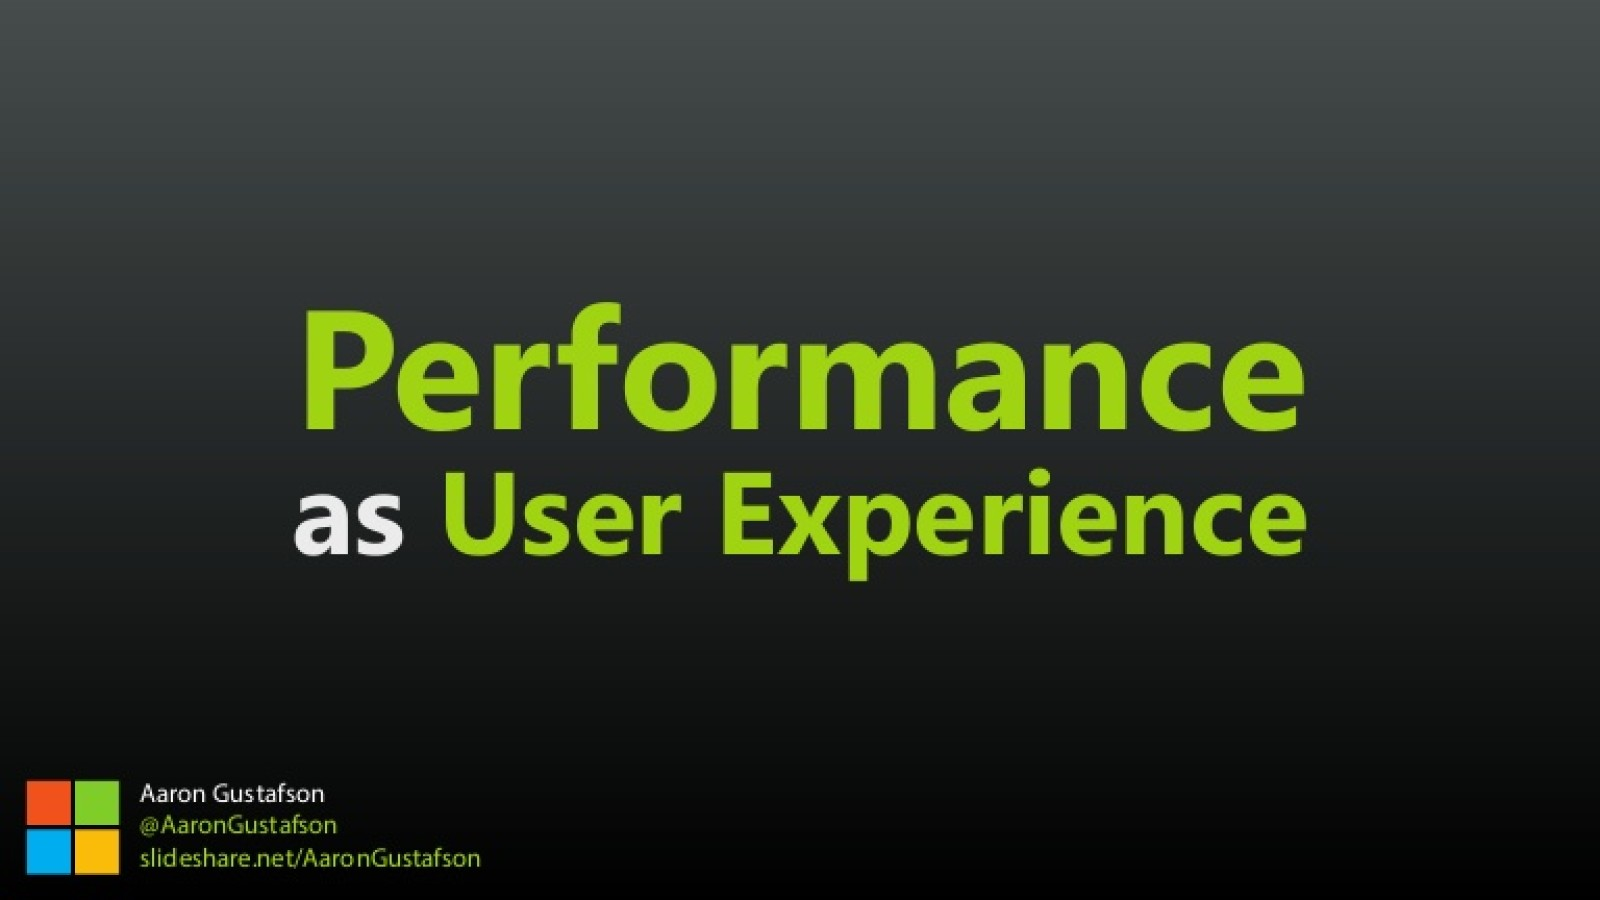 Performance as User Experience